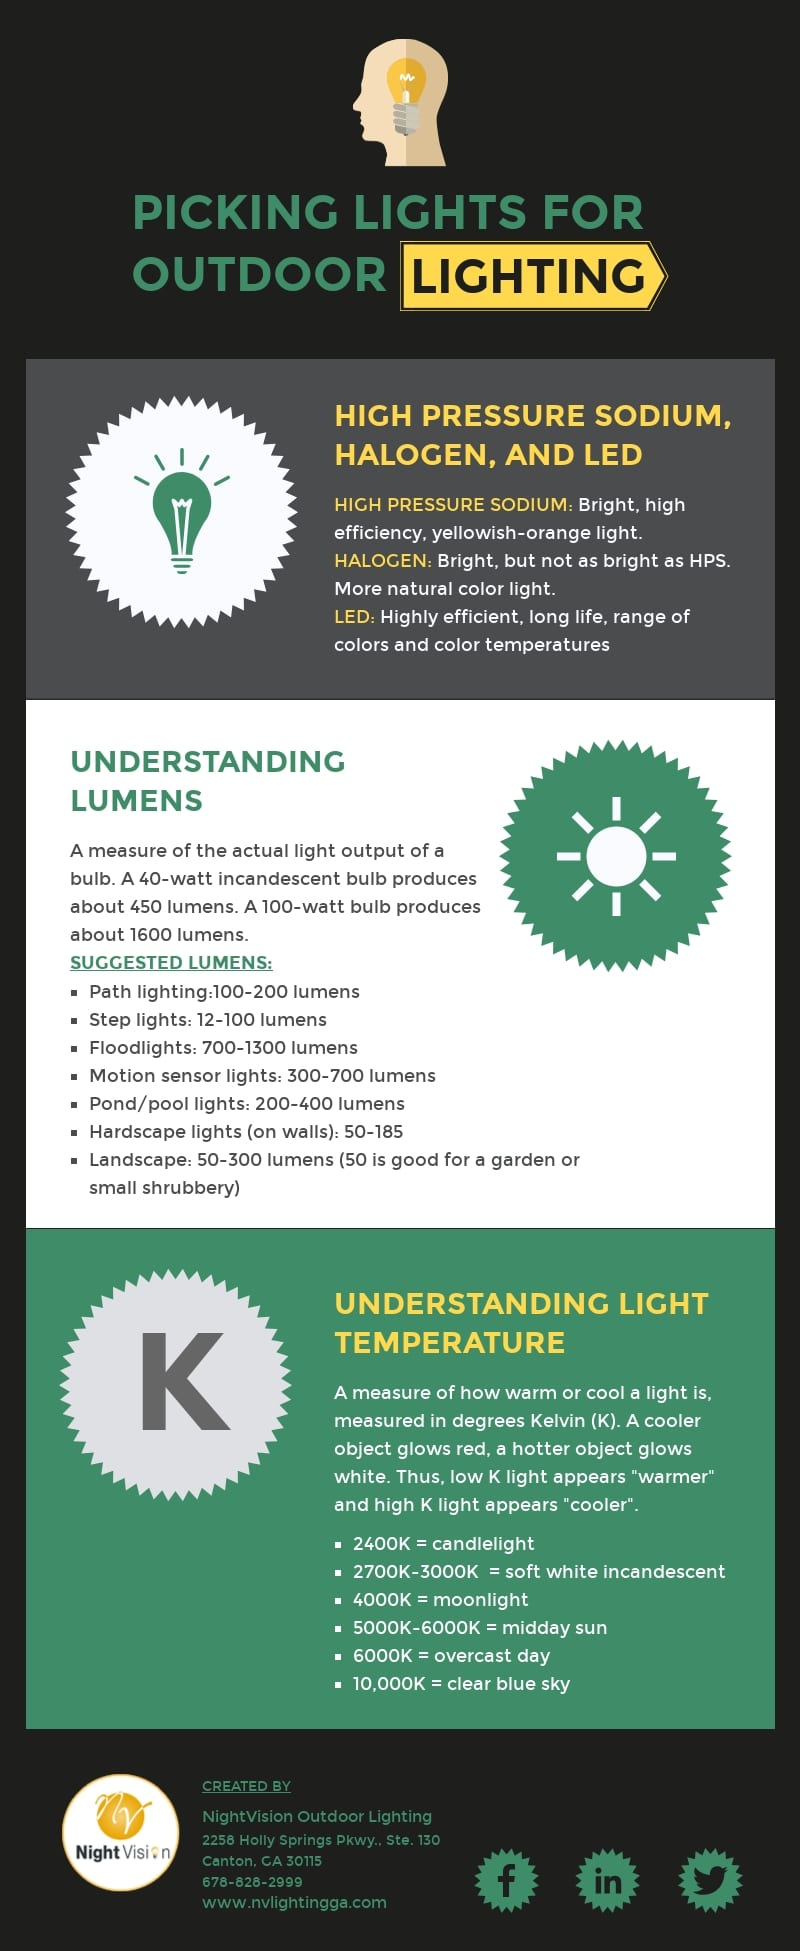 Picking Lights for Outdoor Landscape Lighting [infographic]